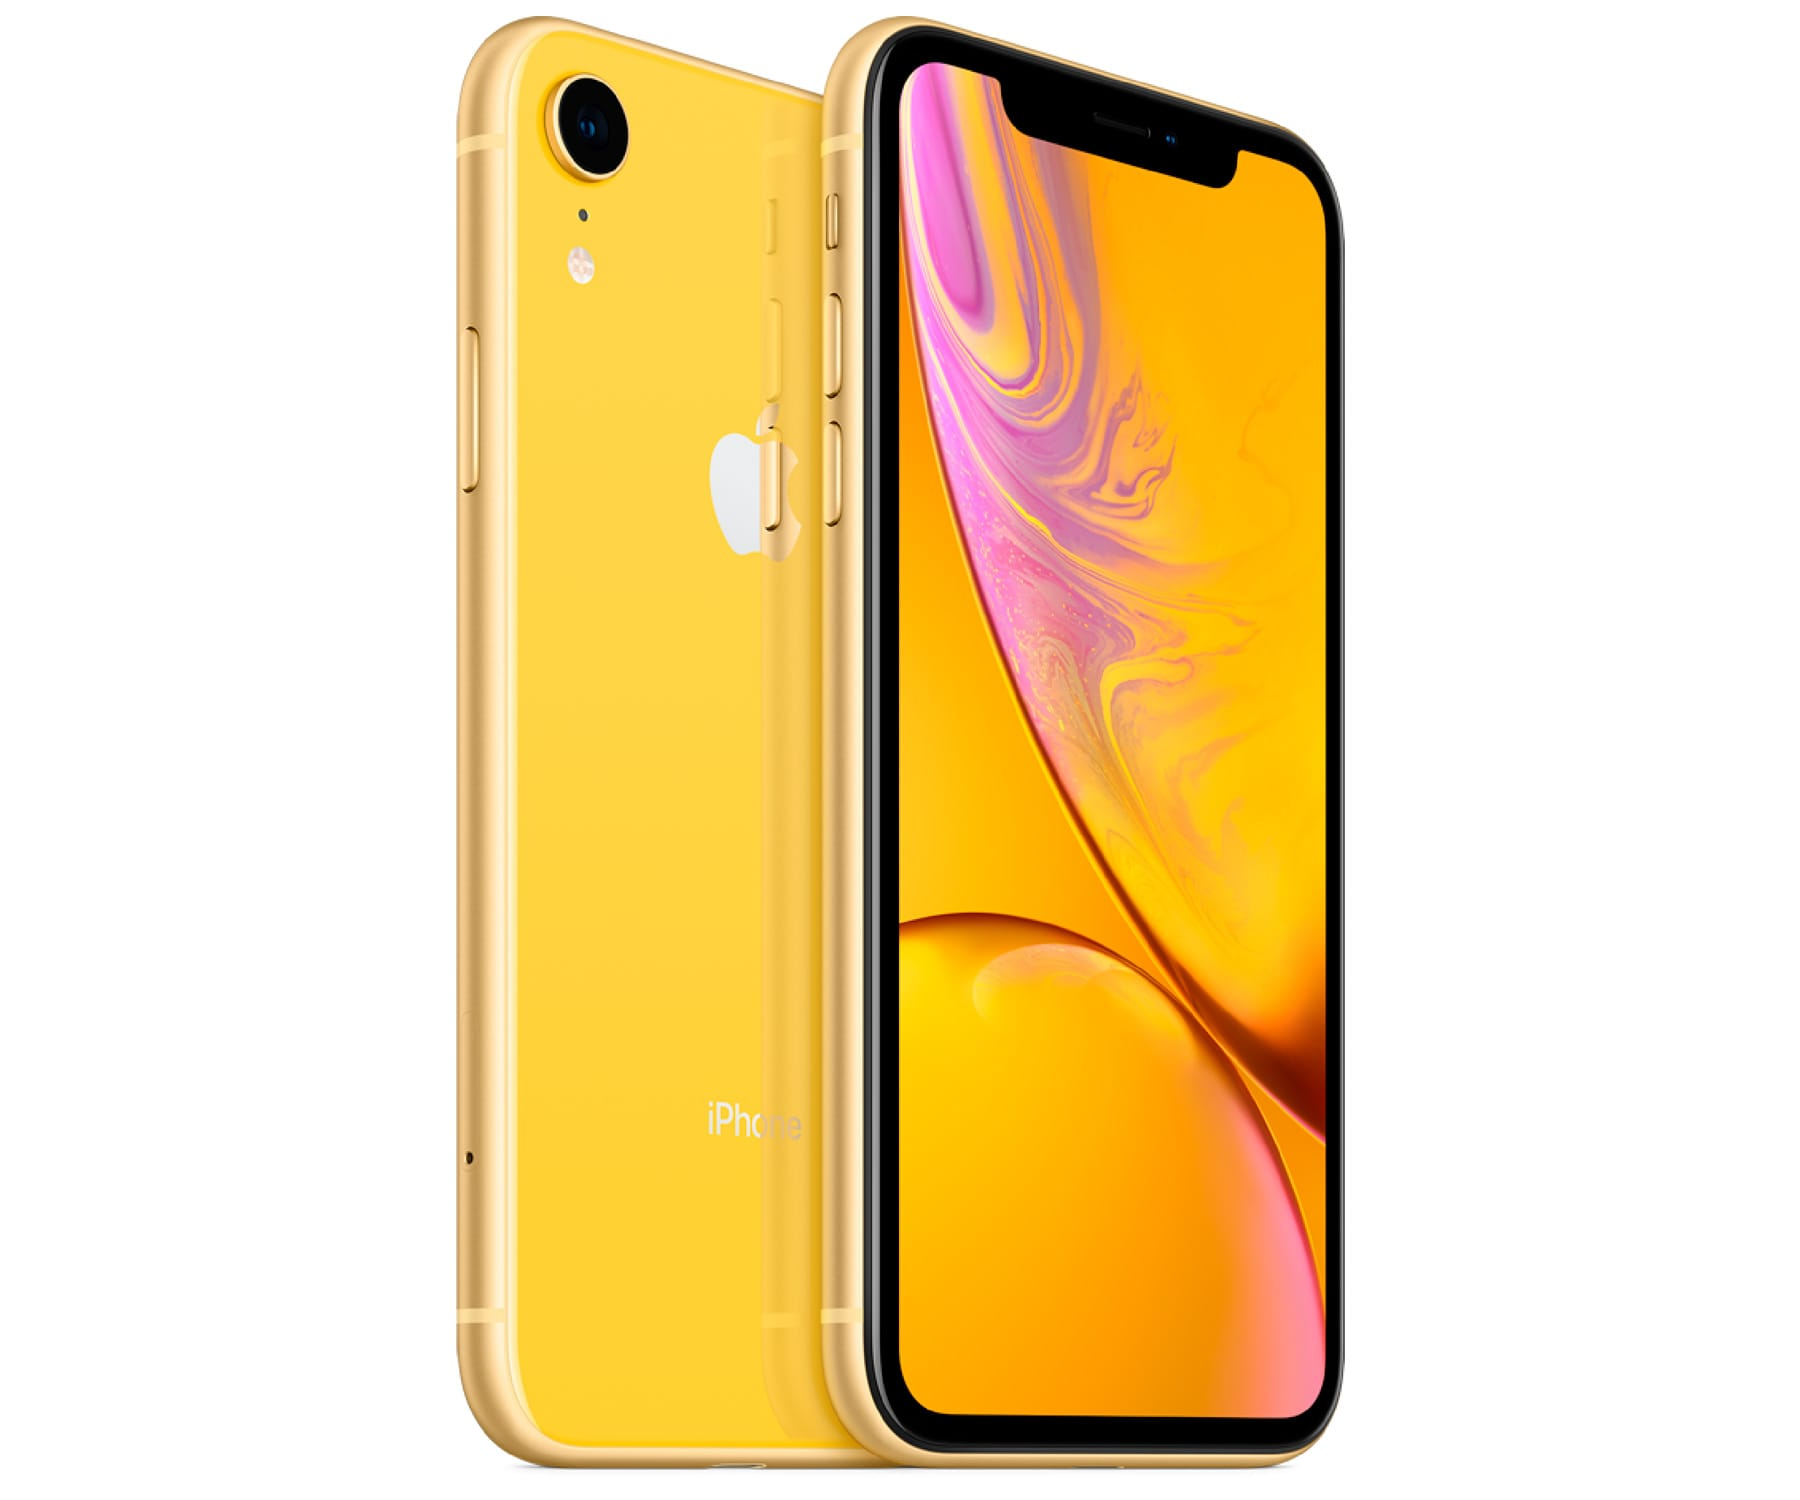 APPLE IPHONE XR 128GB AMARILLO REACONDICIONADO CPO MÓVIL 4G 6.1'' LIQUID RETINA HD LED HDR/6CORE/128GB/3GB RAM/12MP/7MP